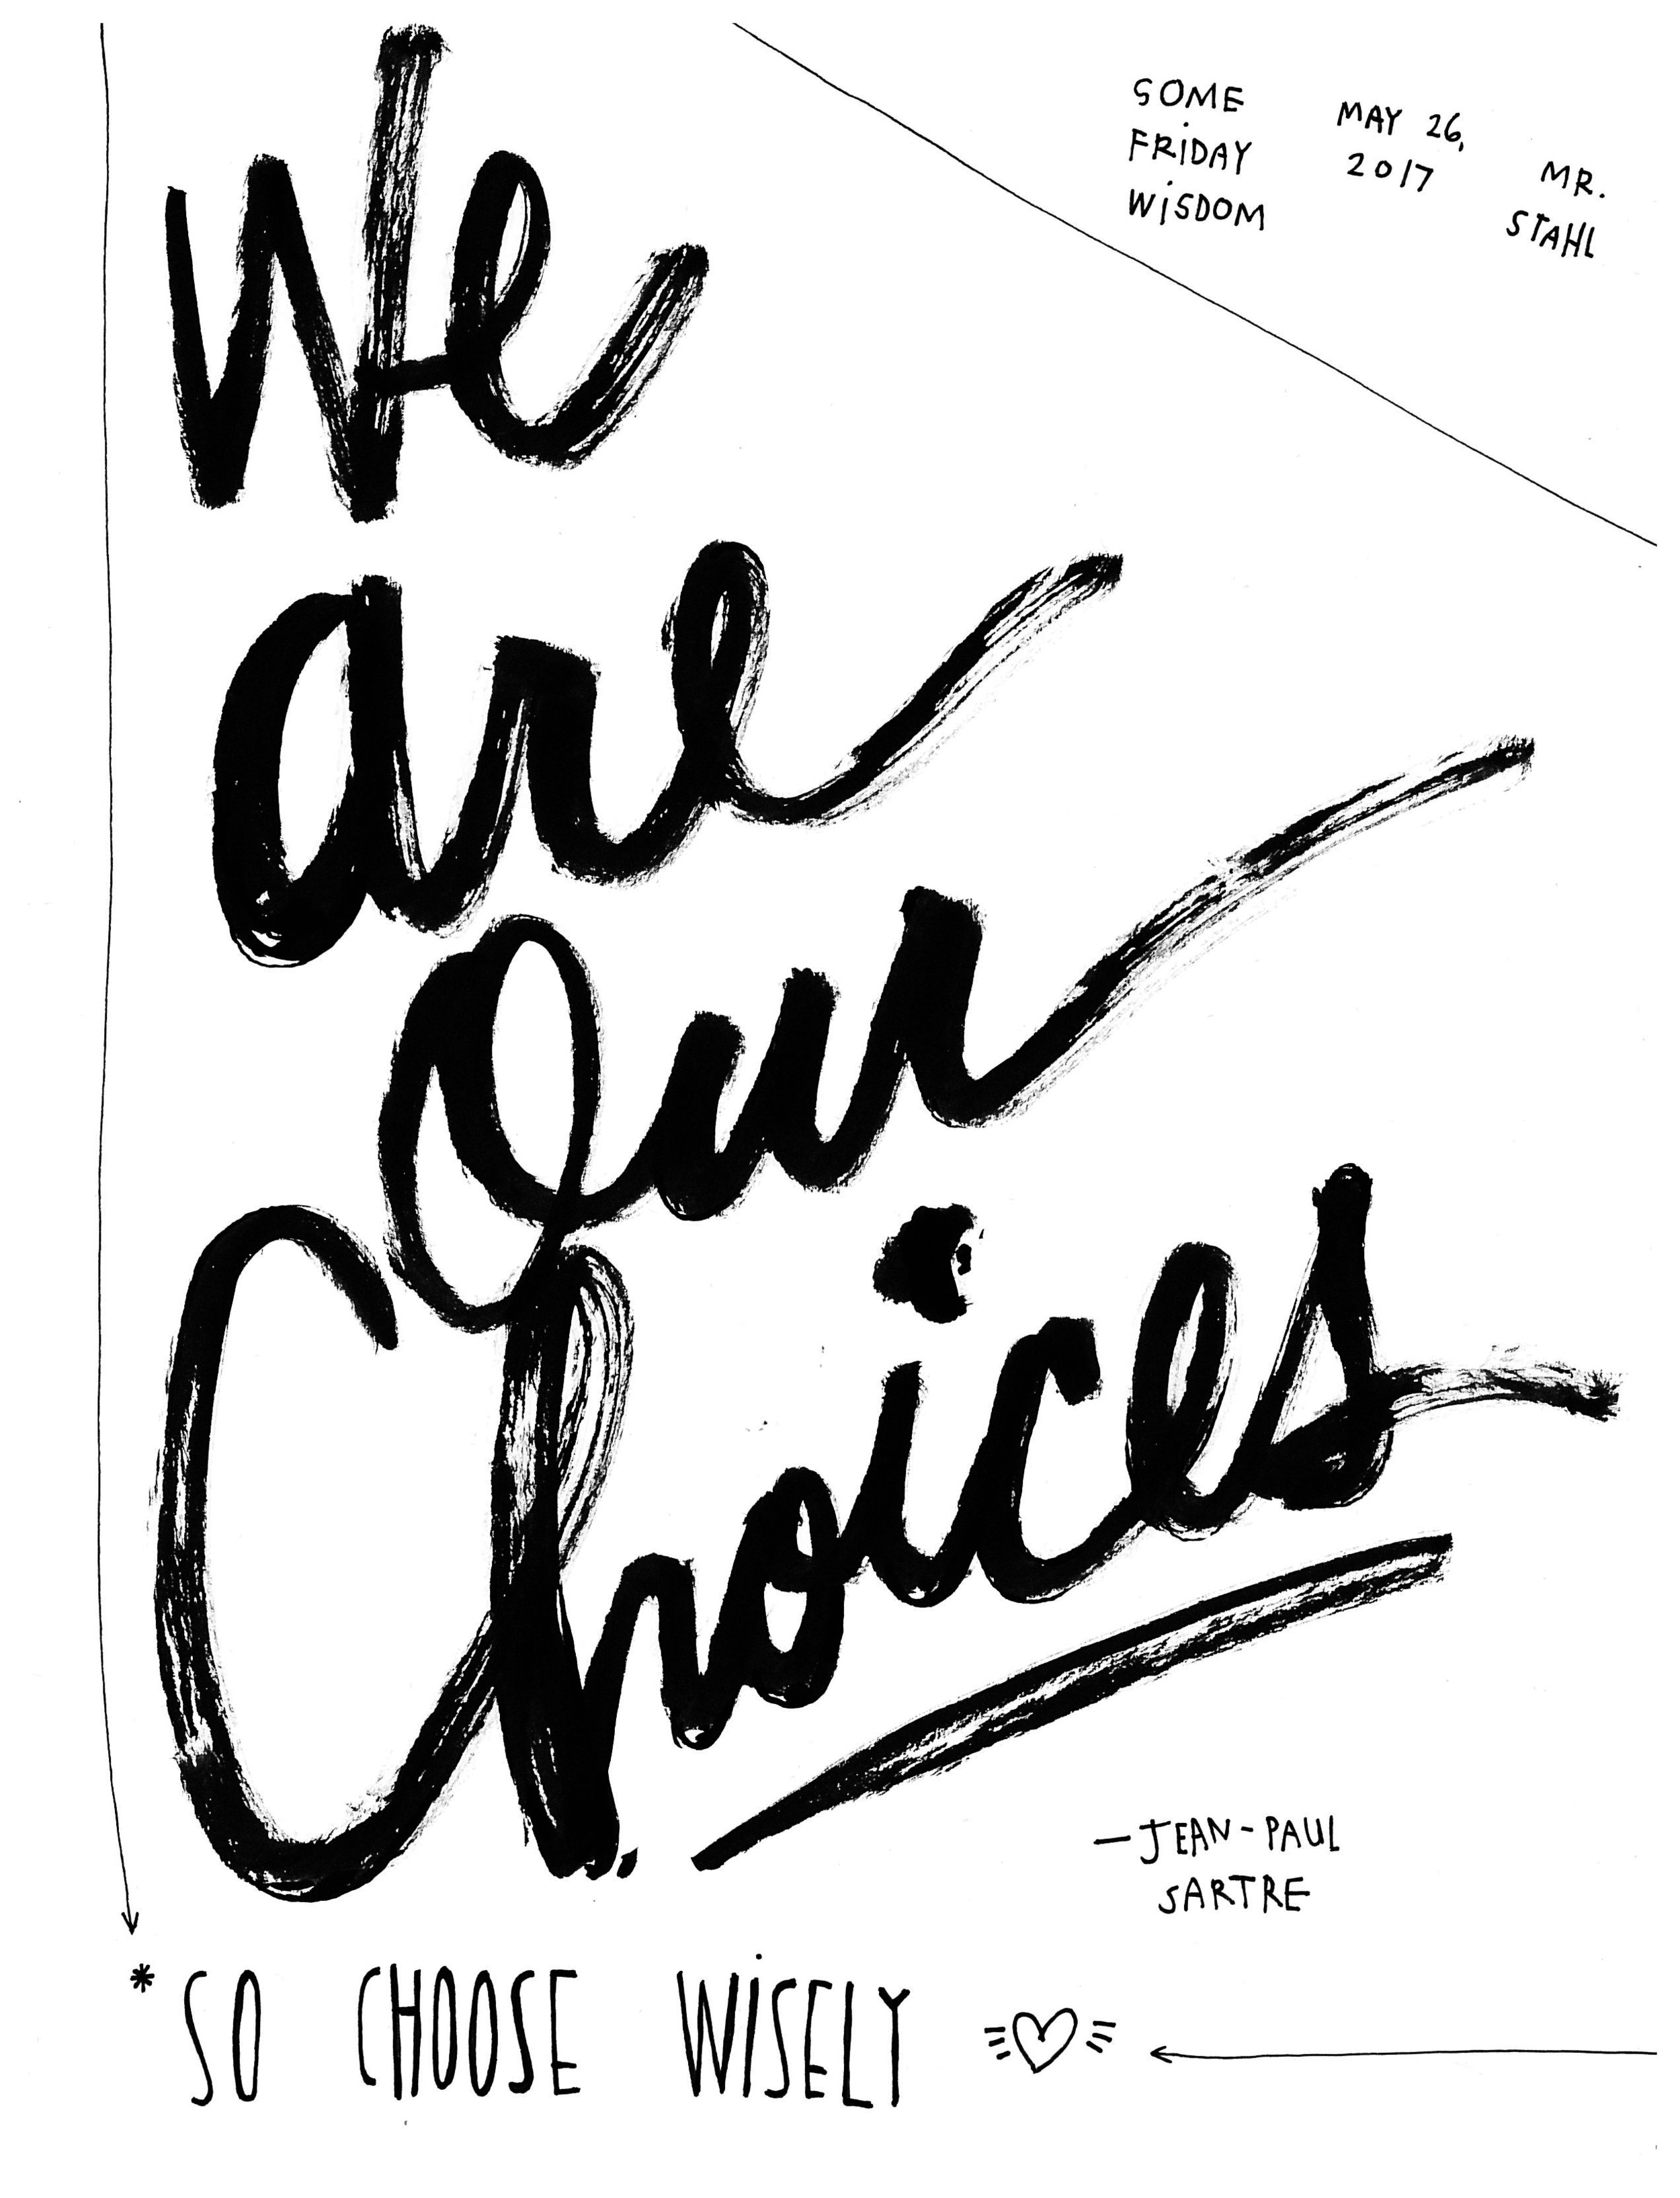 17.05.25 we are our choices.jpg